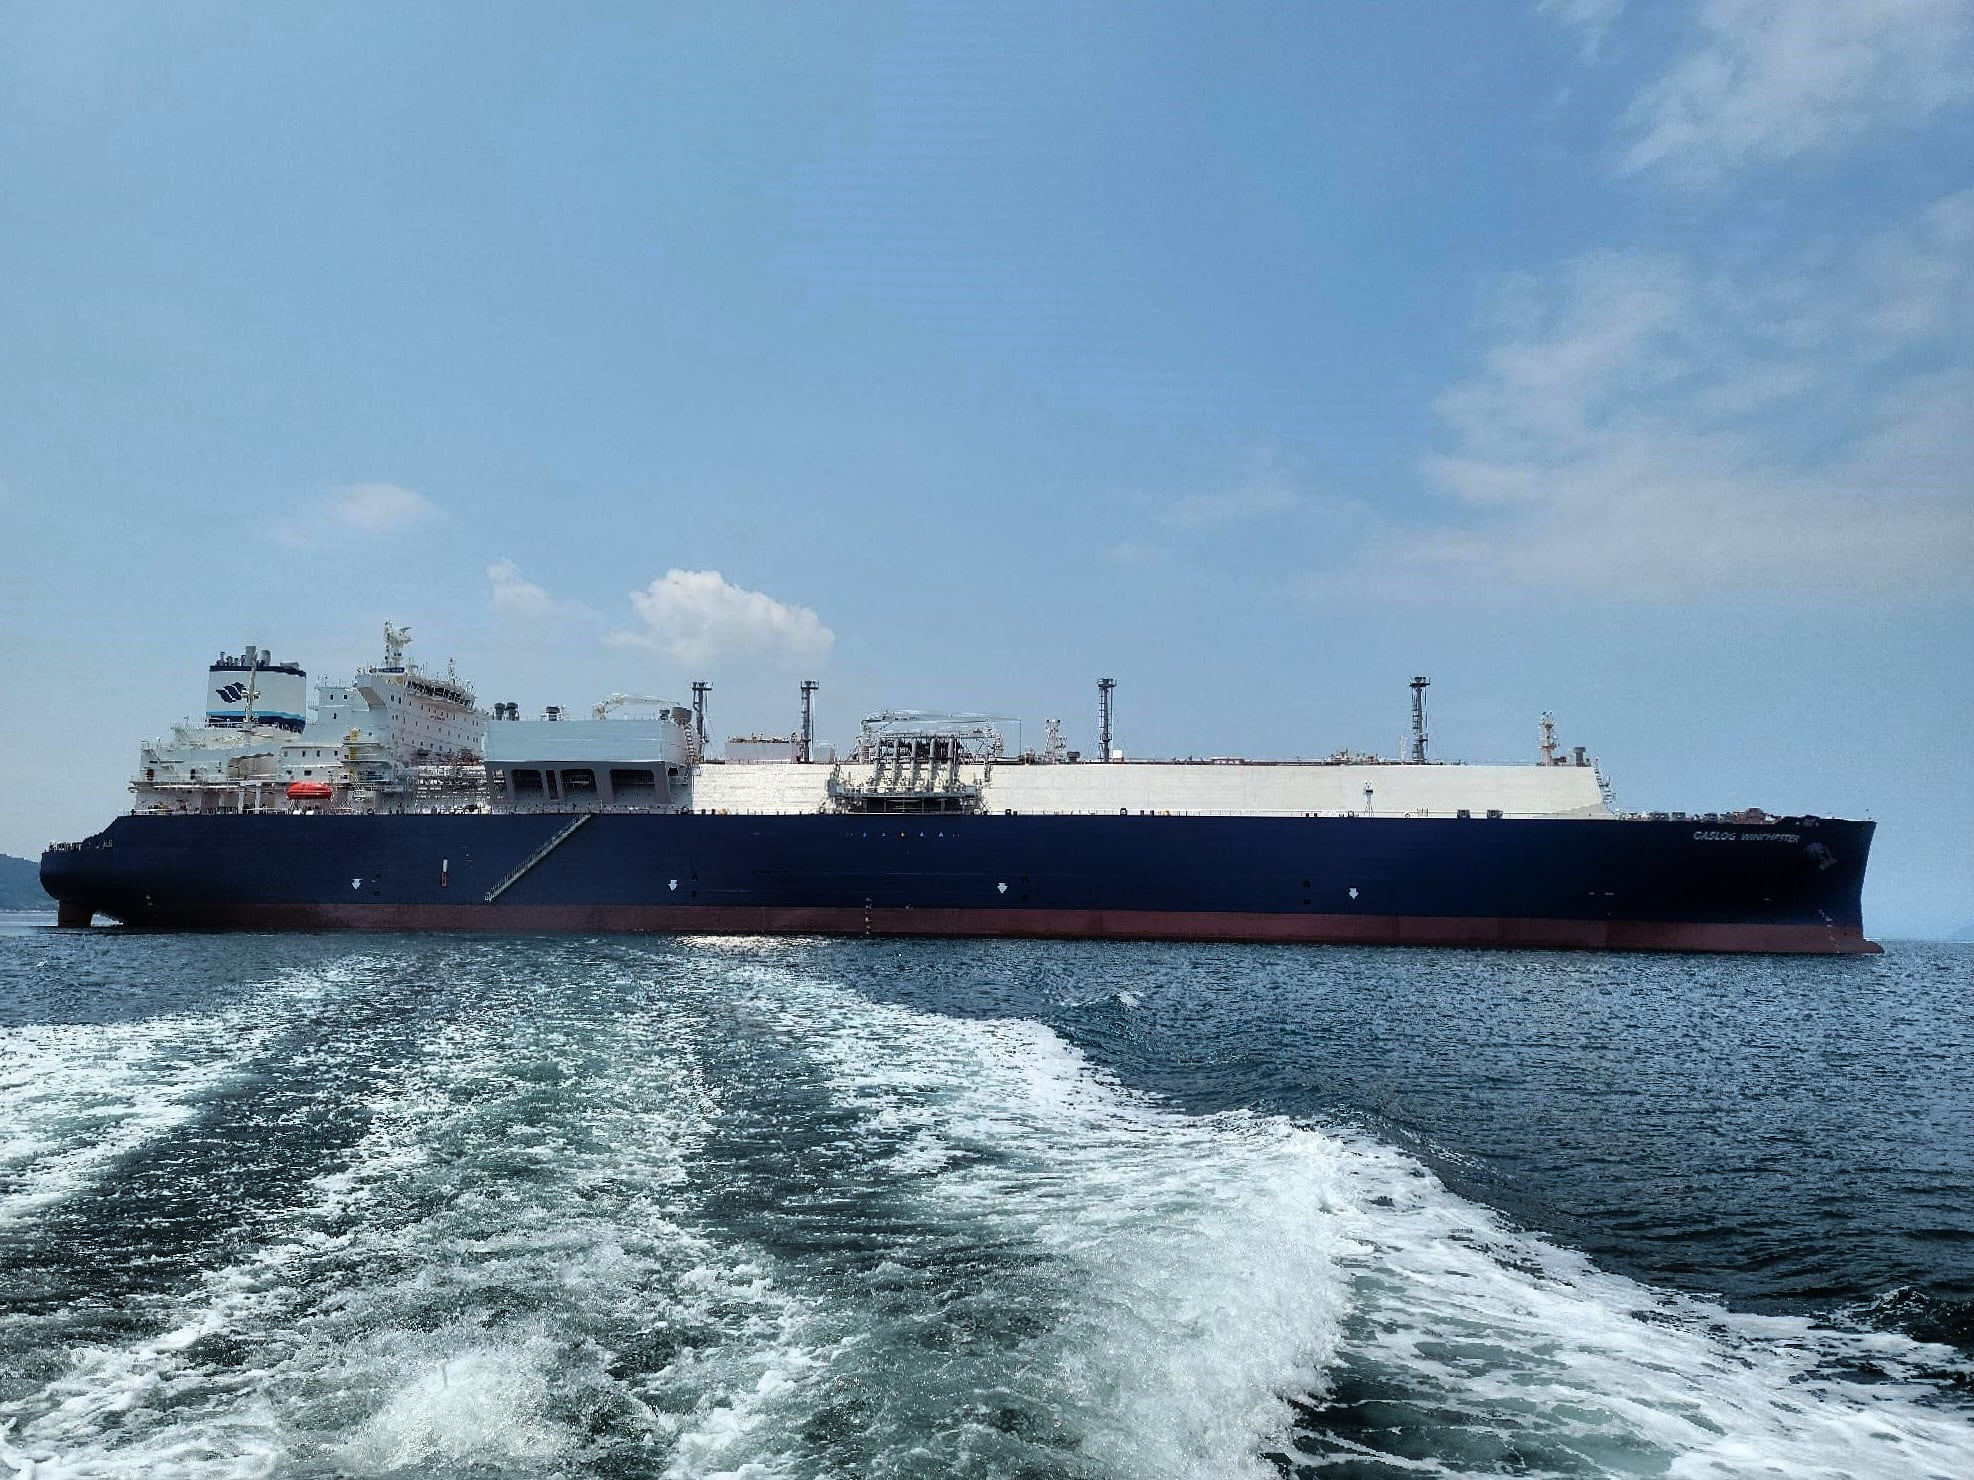 GasLog adds another LNG tanker to its fleet